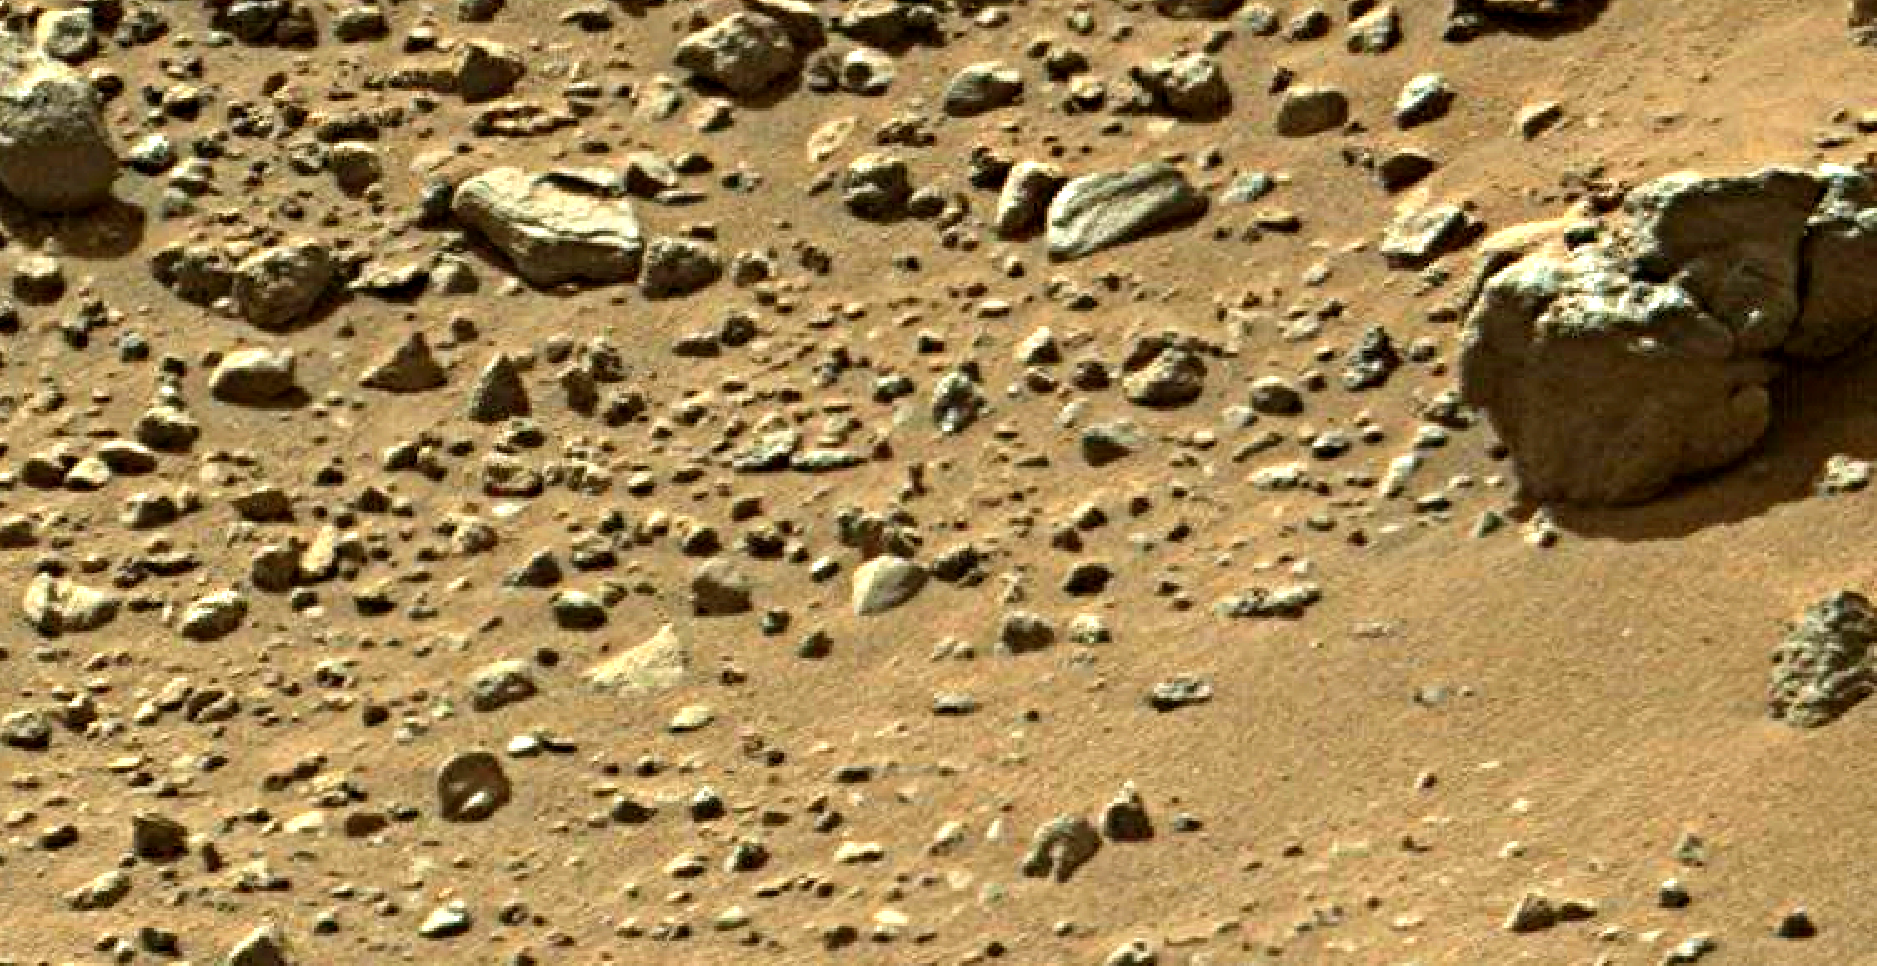 mars sol 1405 anomaly artifacts 8 was life on mars